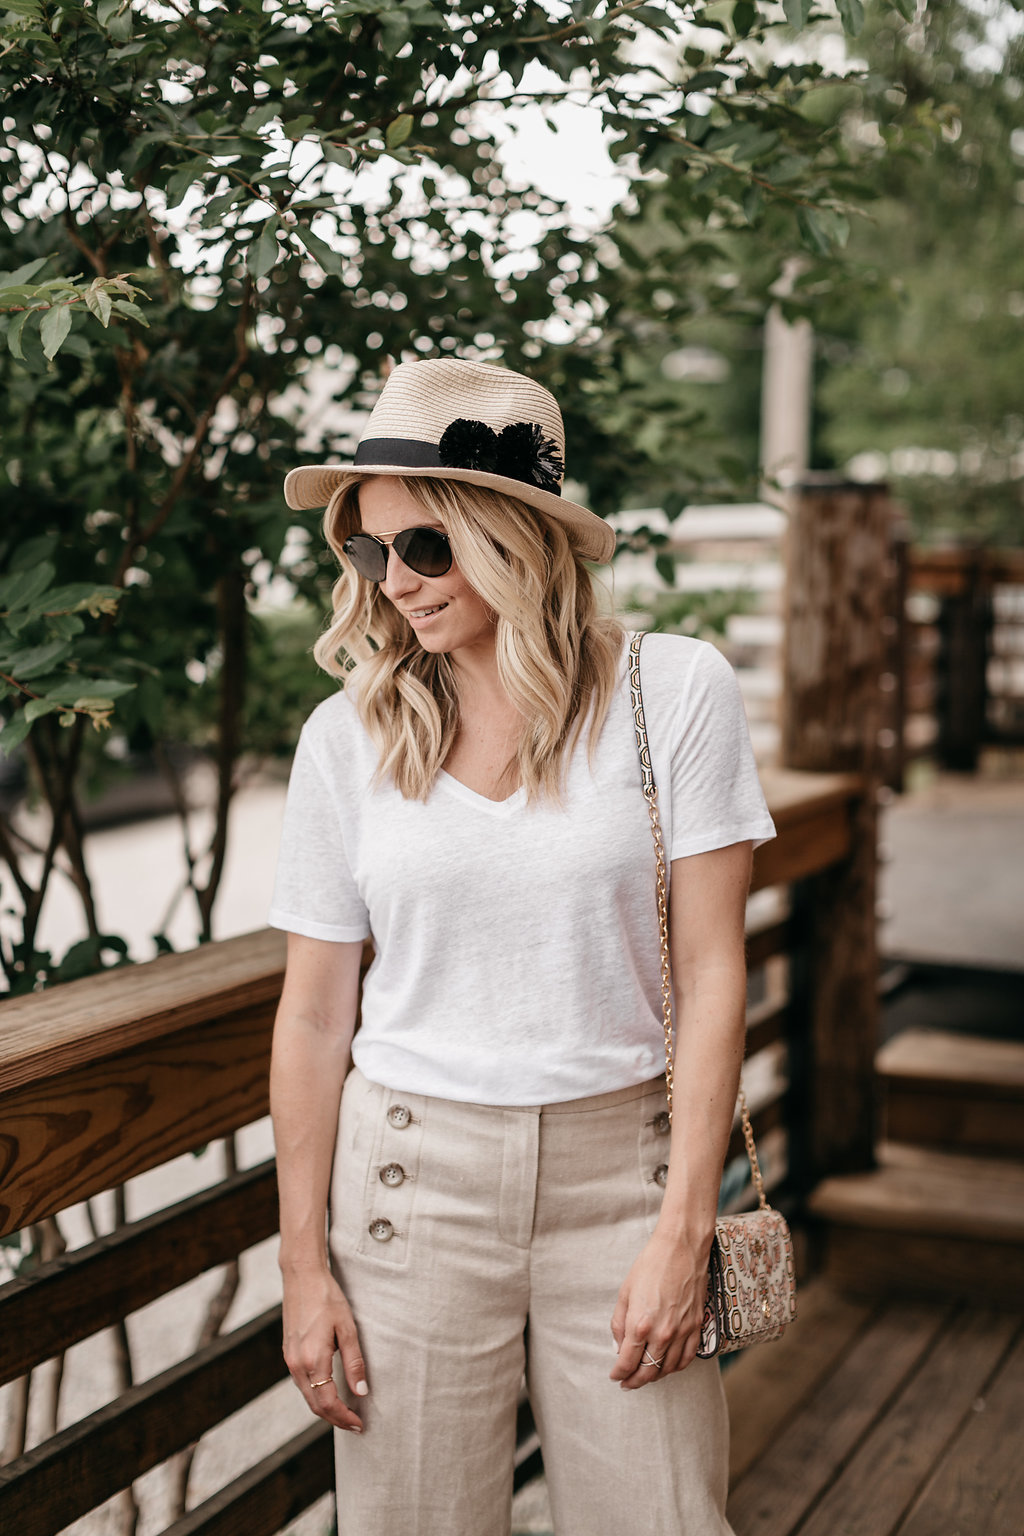 One Small Blonde | Brooke Burnett is wearing a basic white t-shirt and a wide leg sailor pants